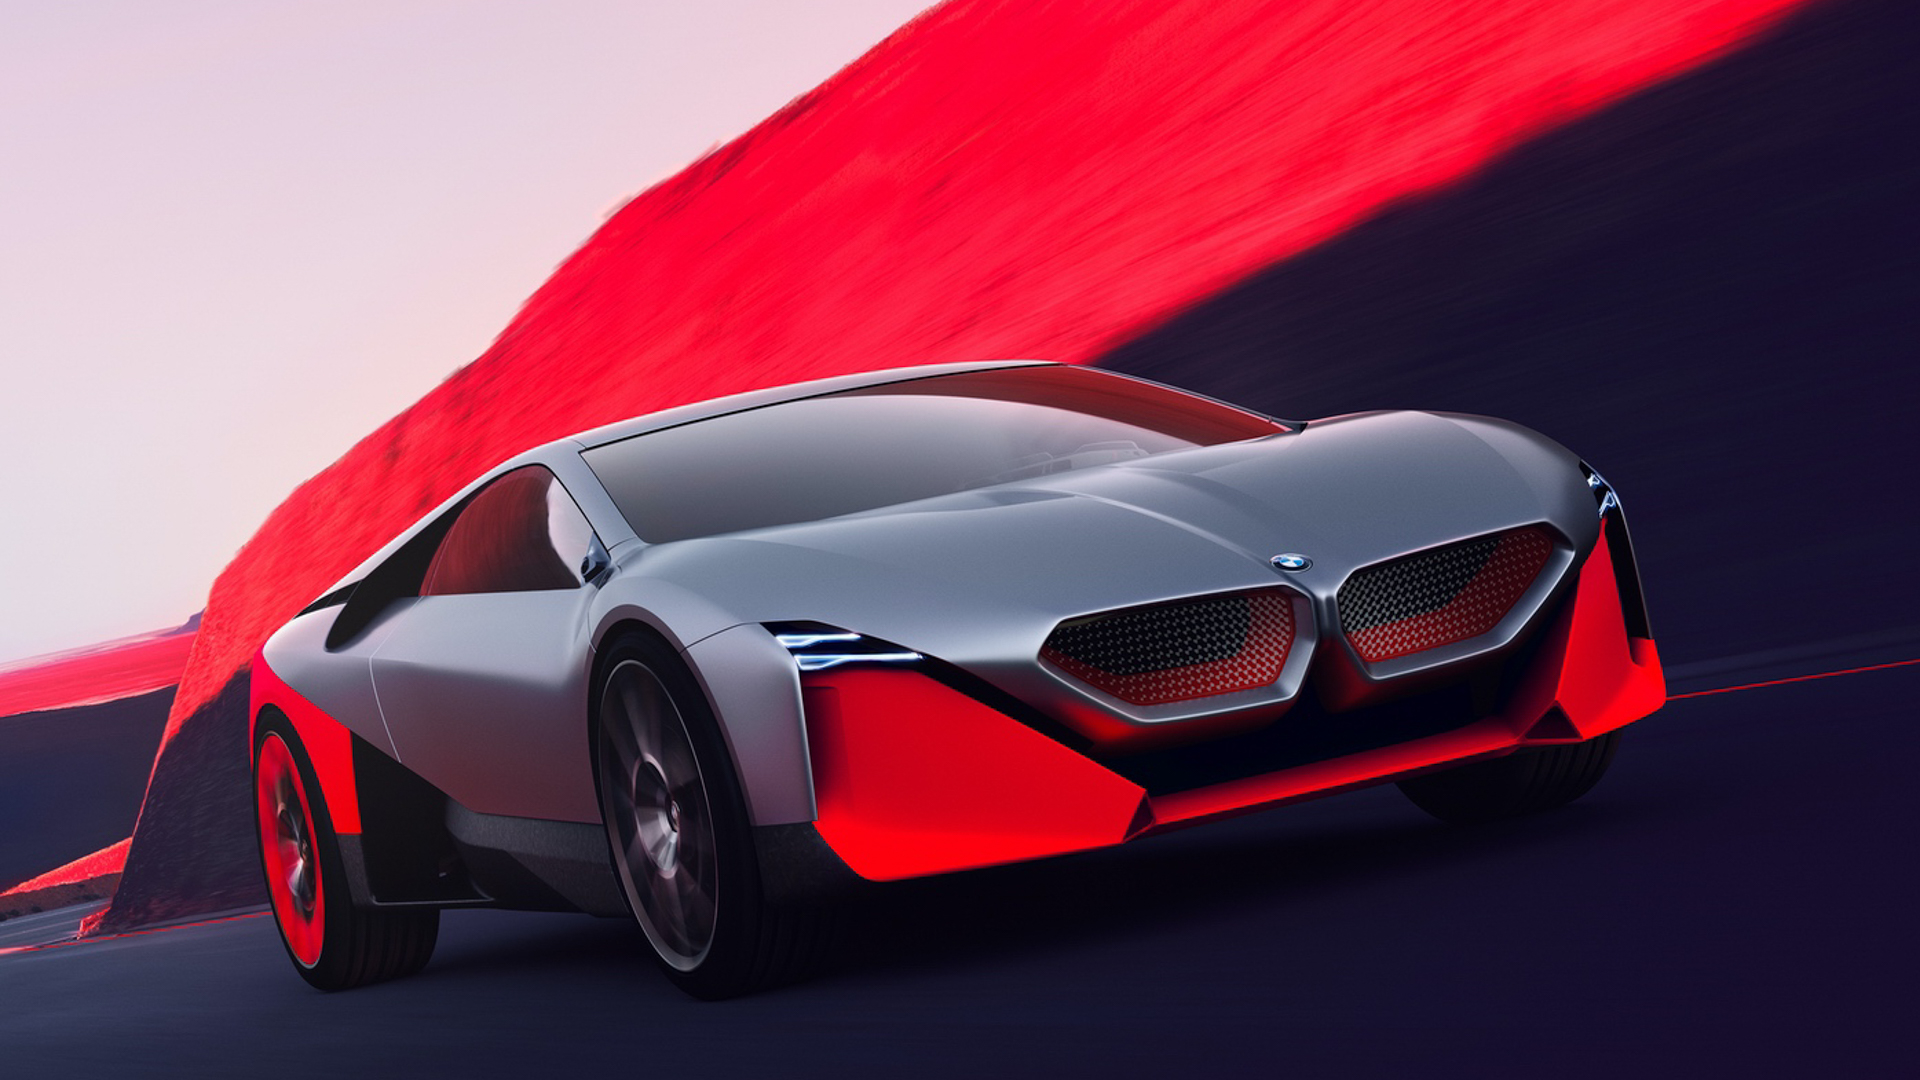 BMW Vision M NEXT vs BMW i8 7 of 10